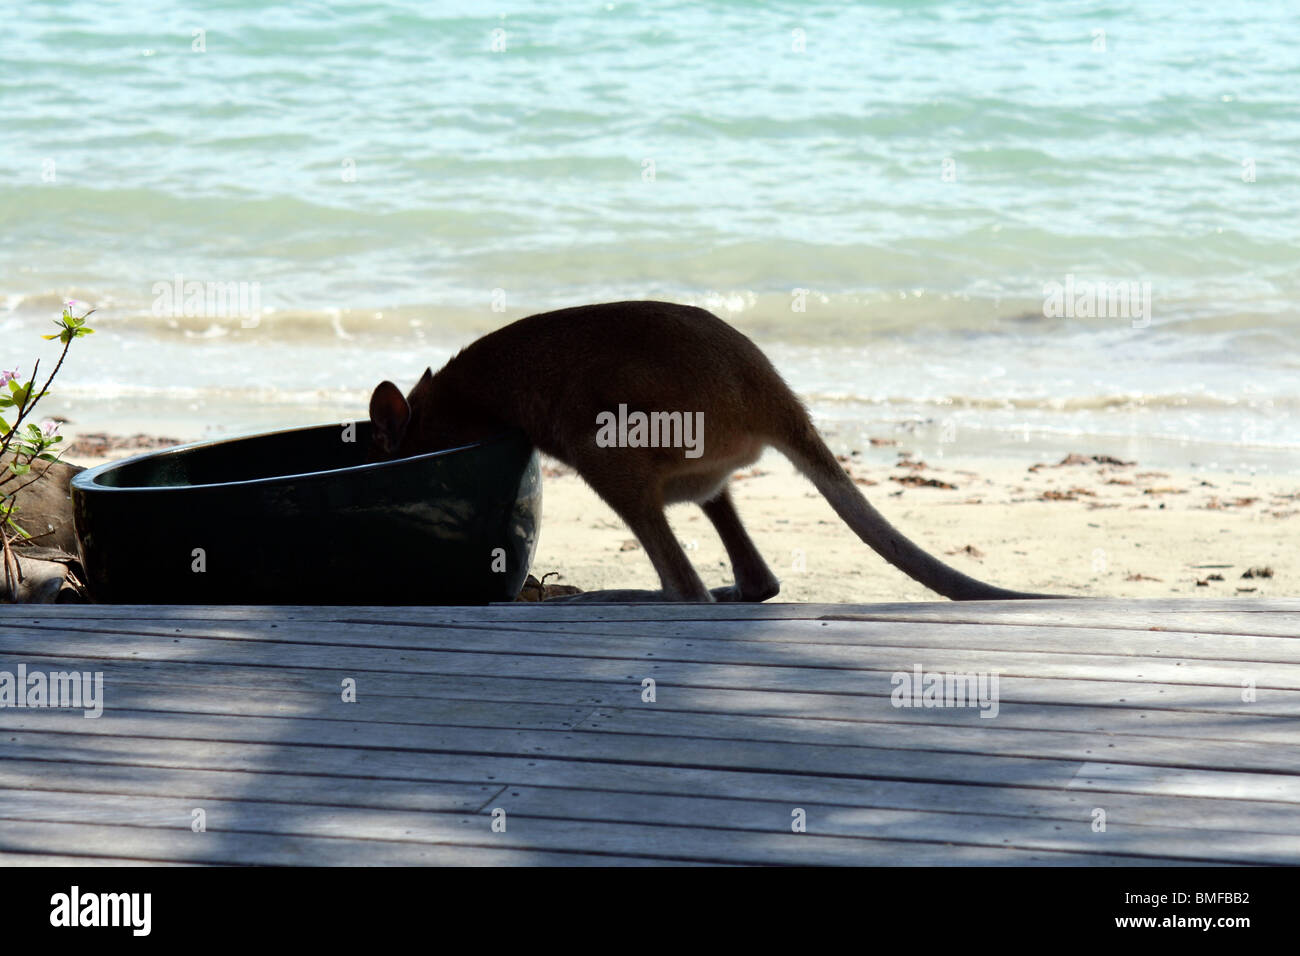 An Australian wallaby taking a drink by the beach, Whitsunday islands, Great Barrier Reef. - Stock Image